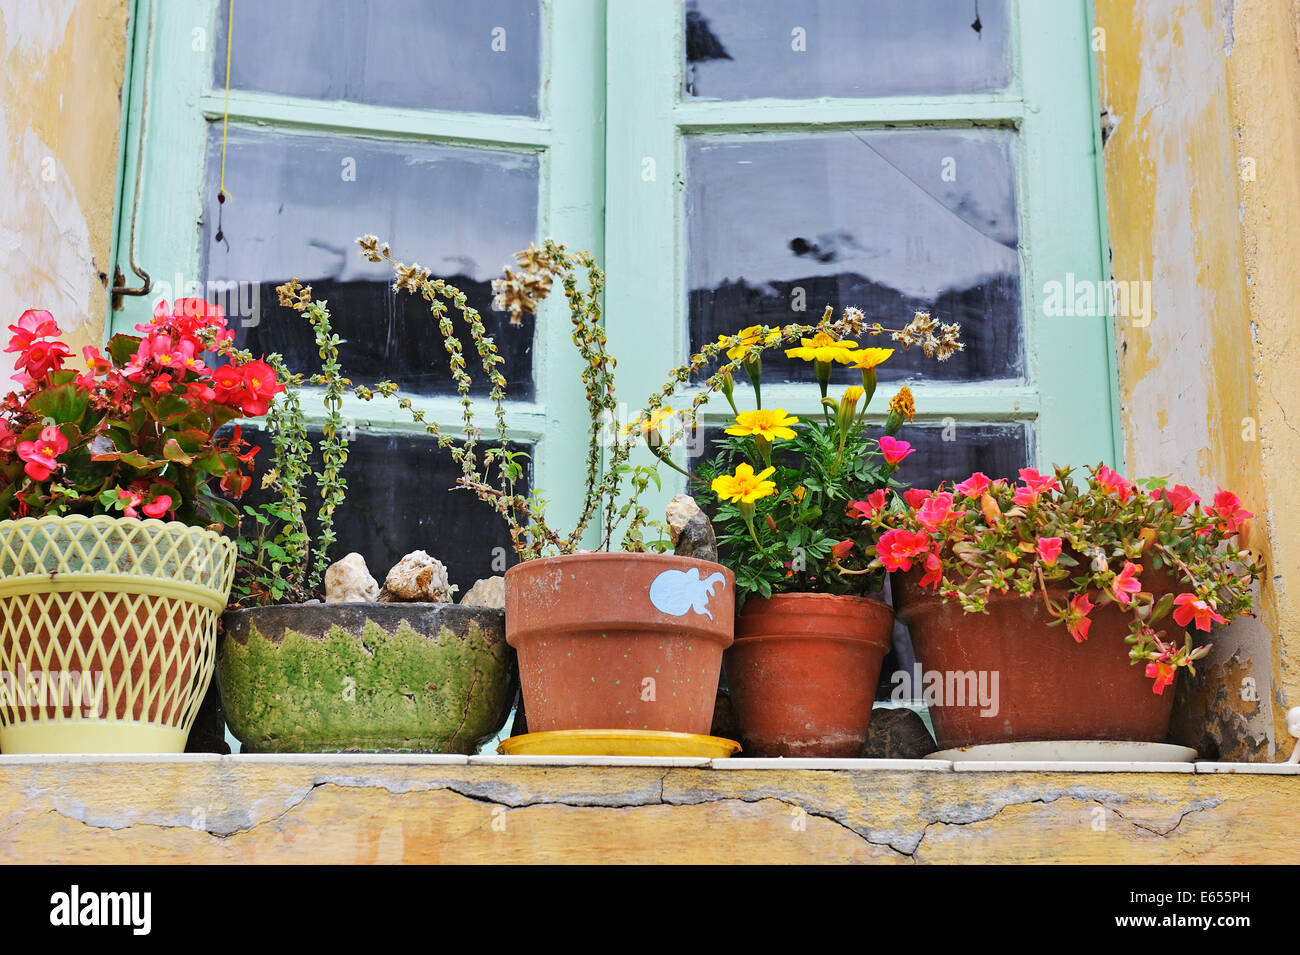 Flowers in plant pots on a windowsill in a French village, France, Europe - Stock Image